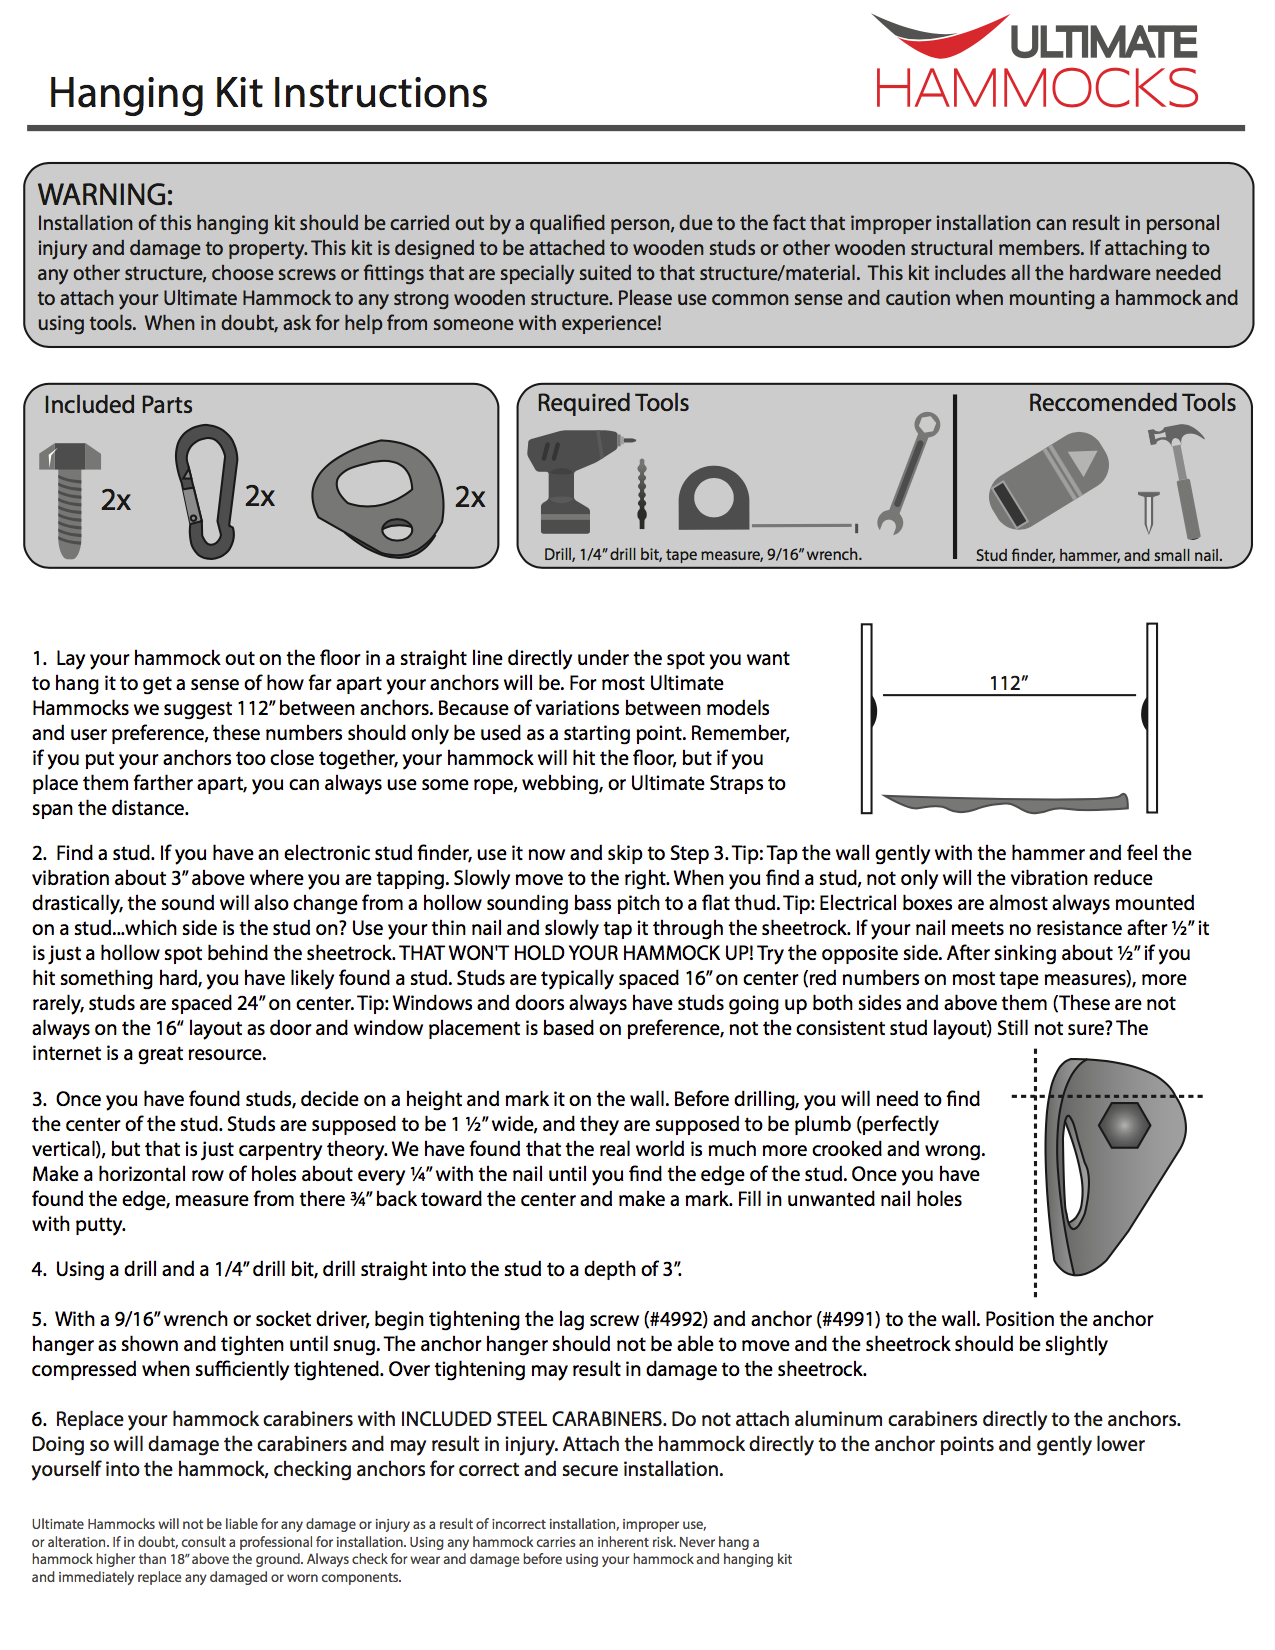 Hanging kit instructions